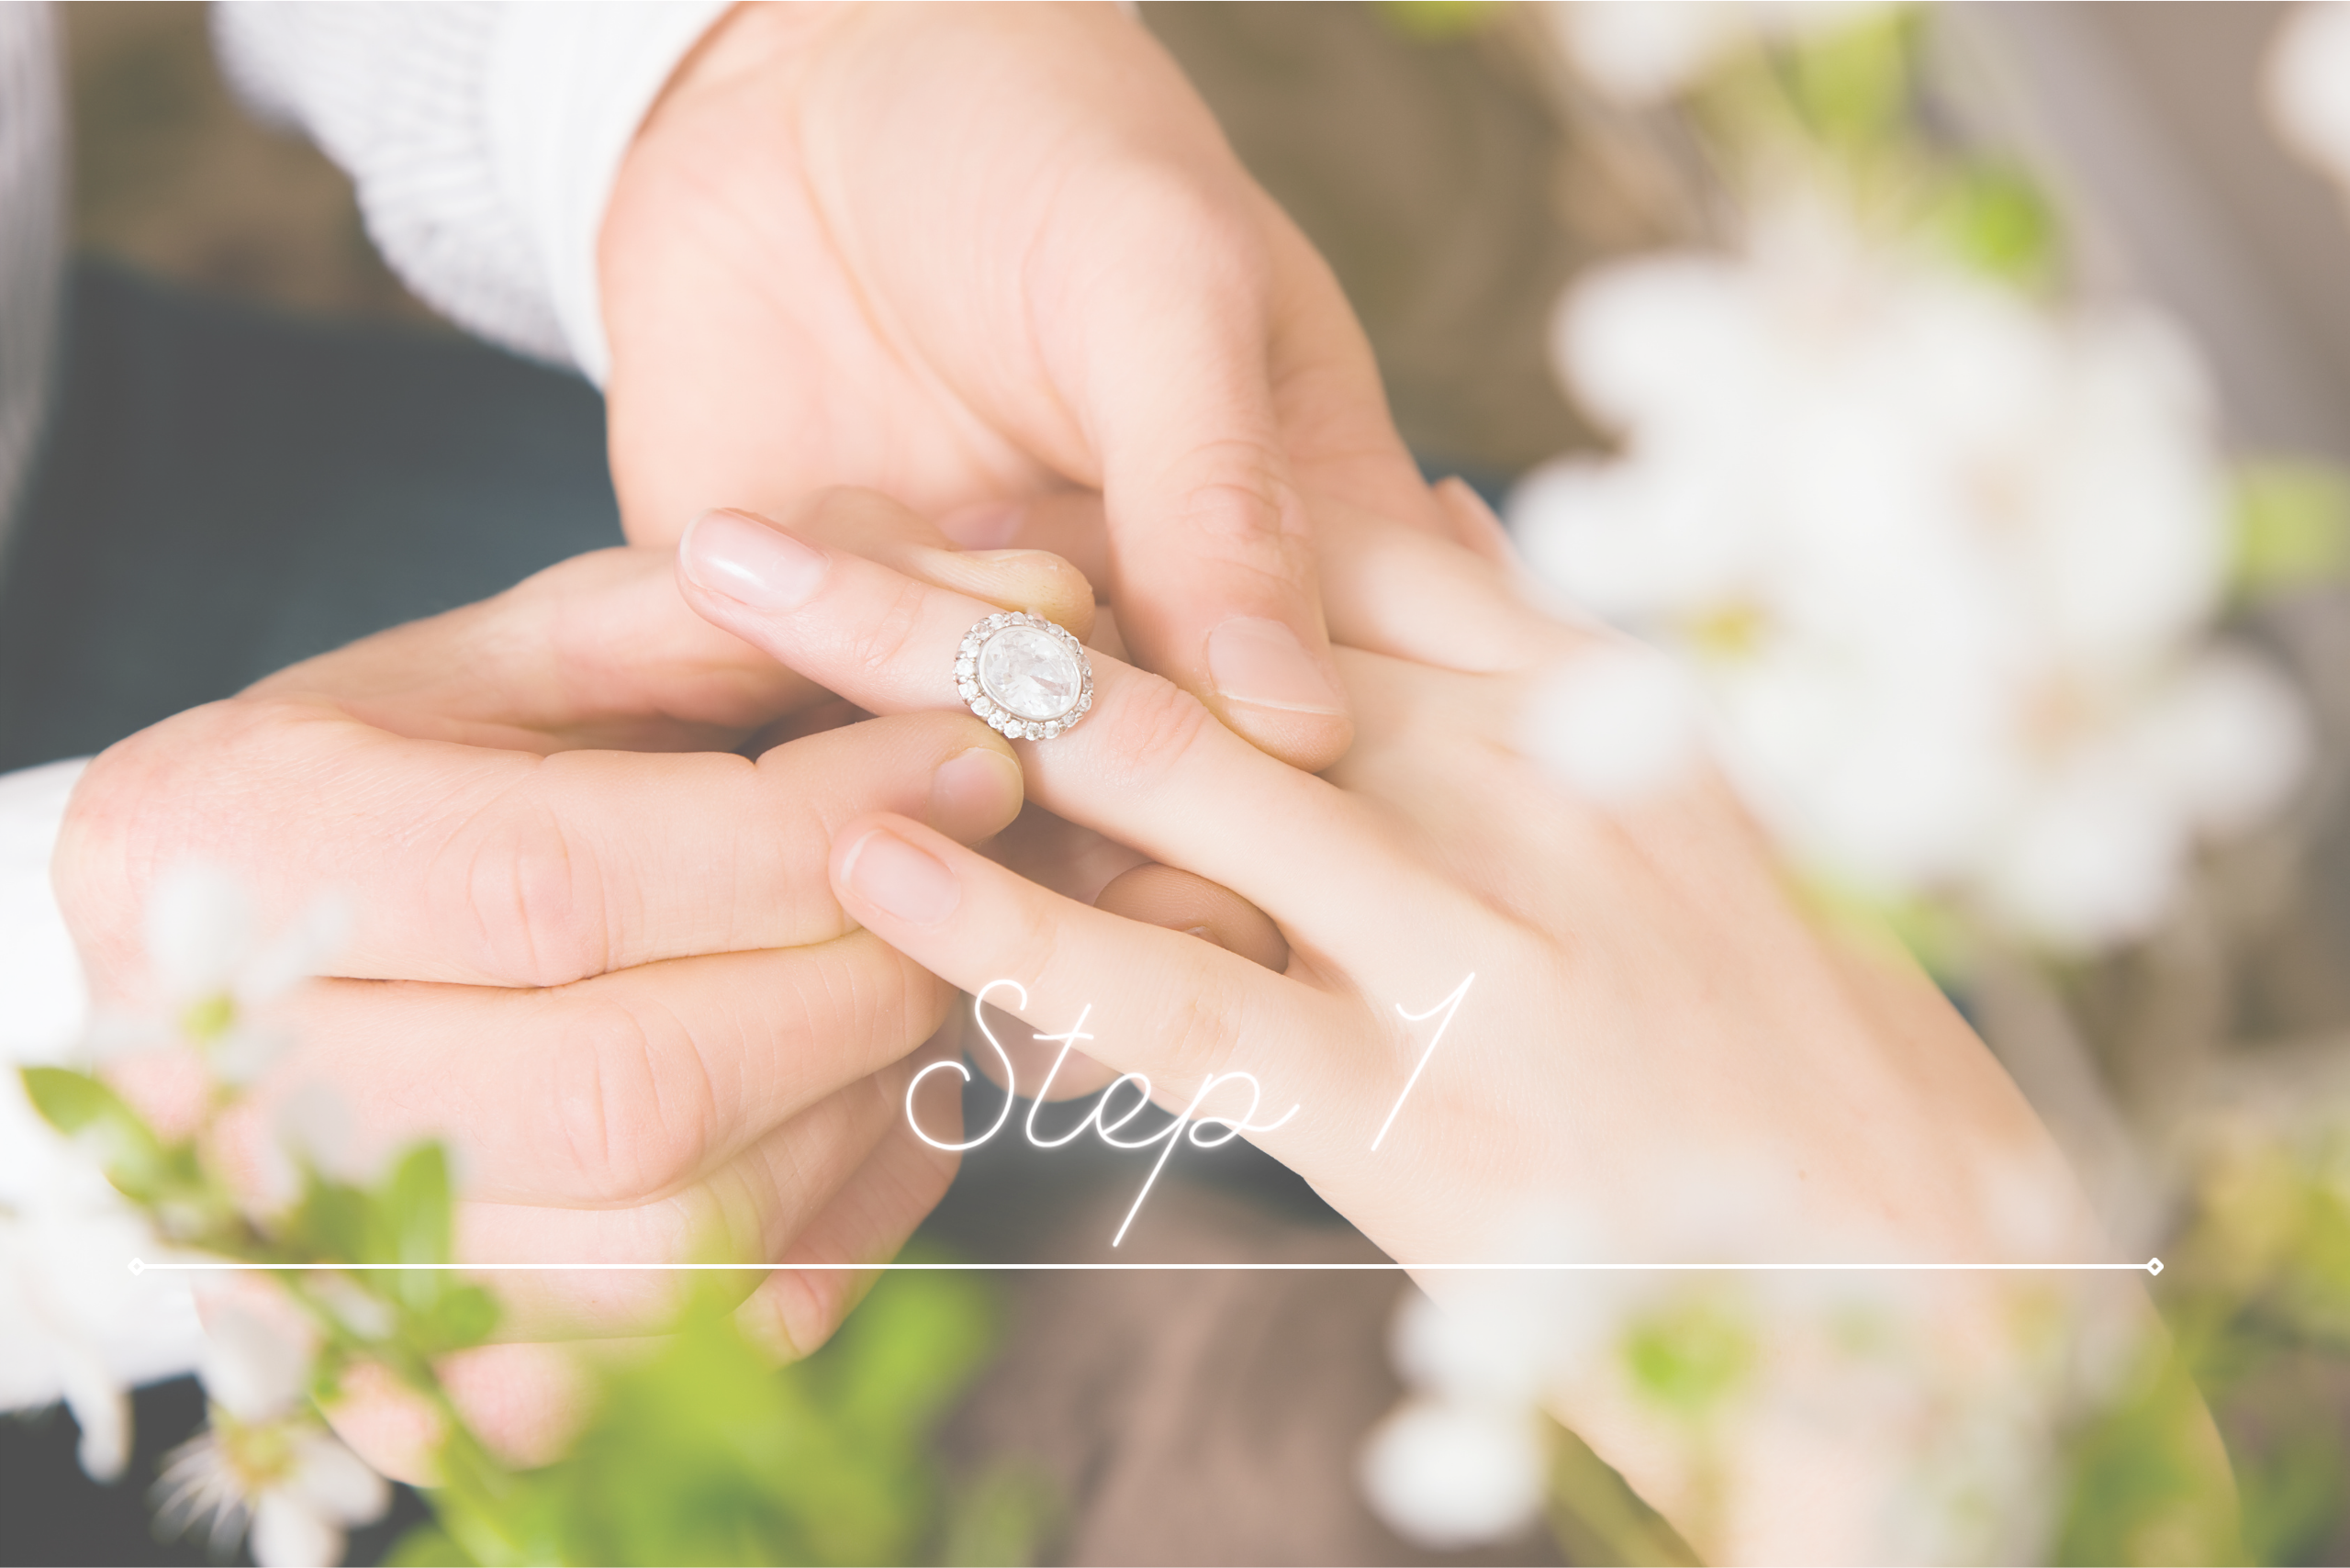 Getting your partner to propose